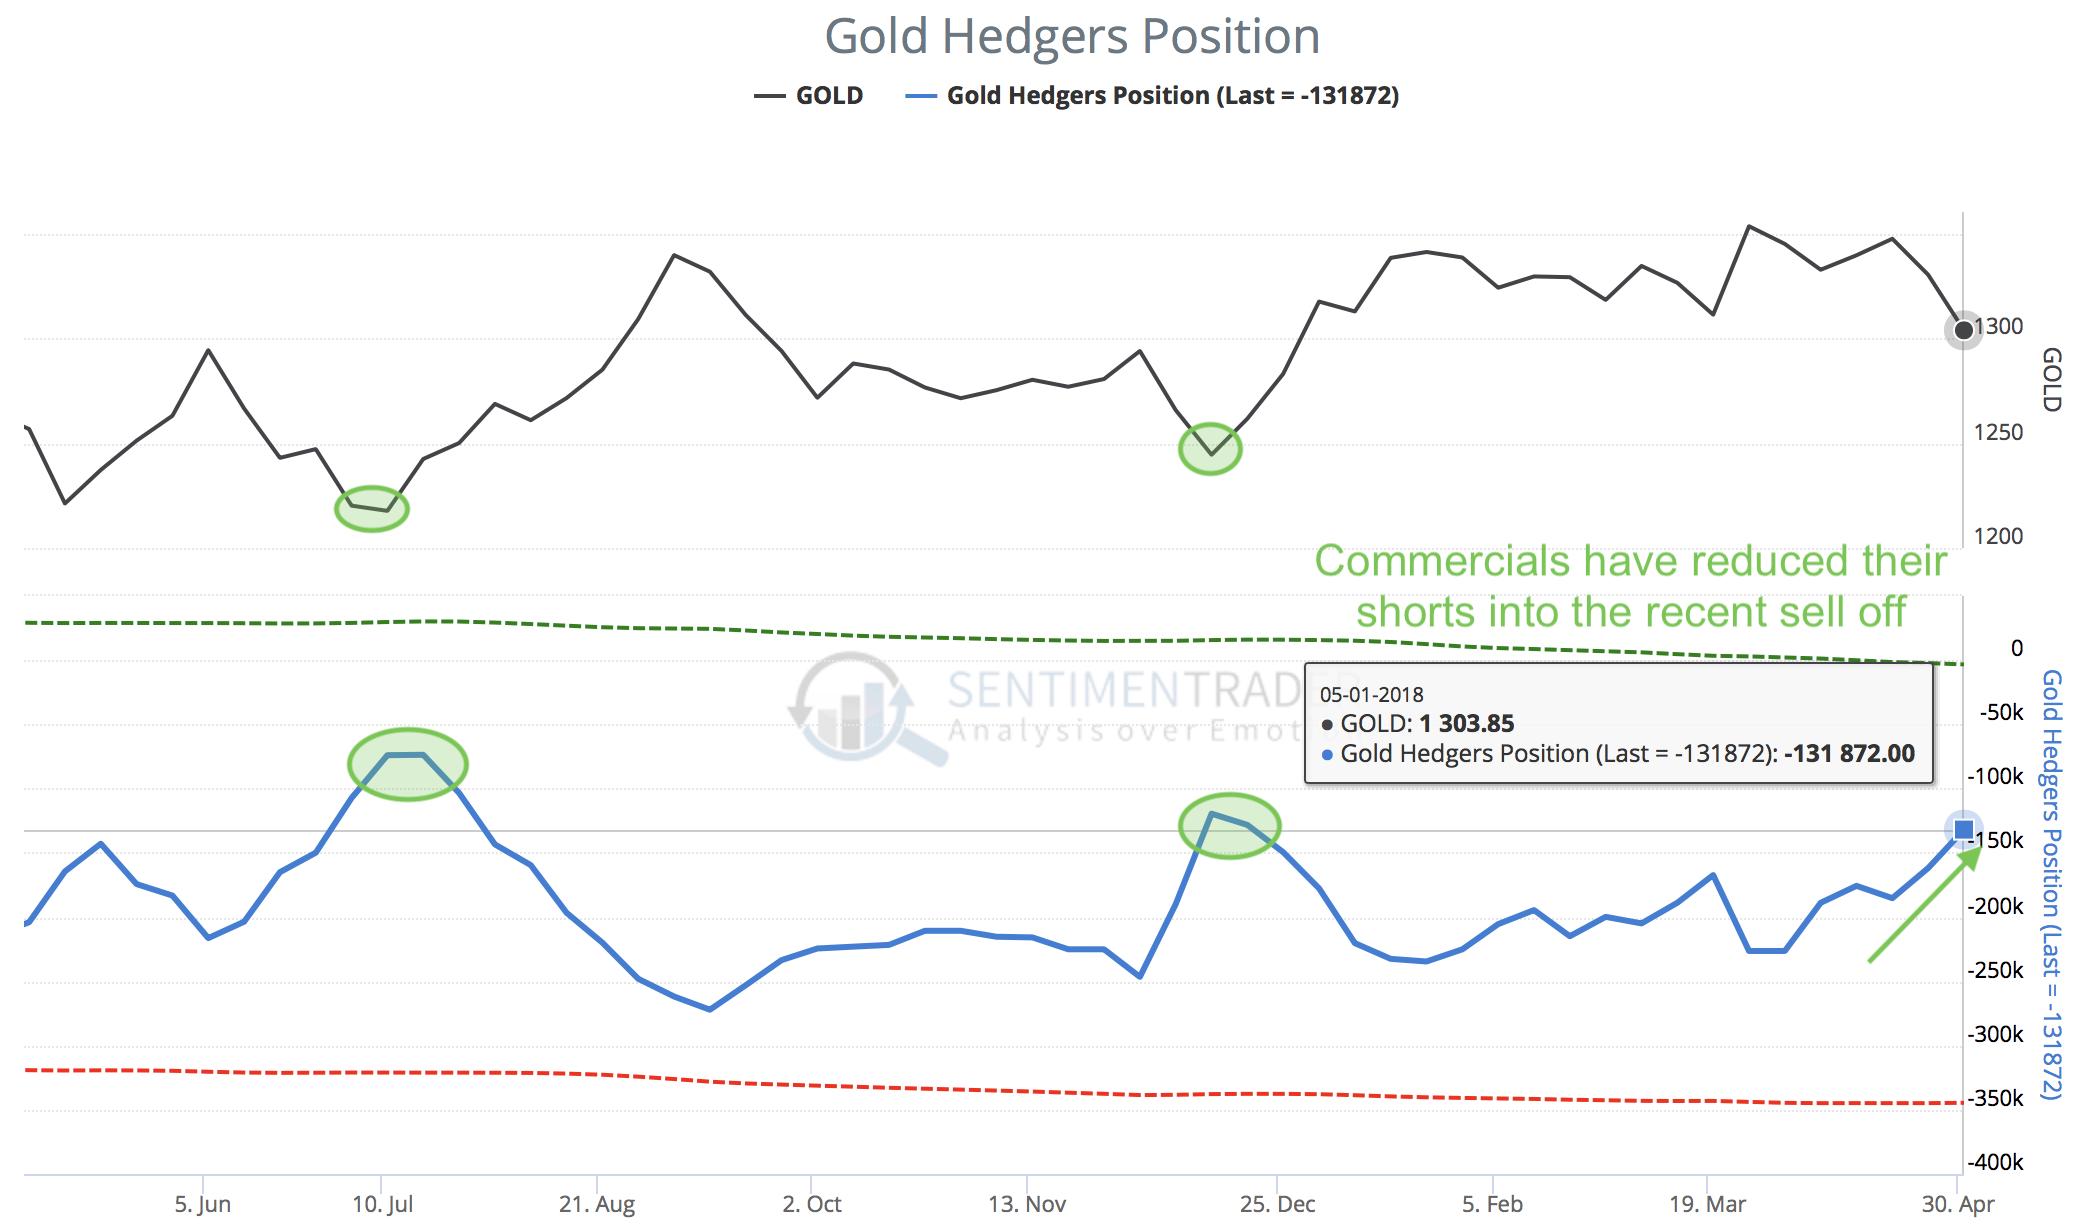 Gold Hedgers Position as of May 1st, 2018